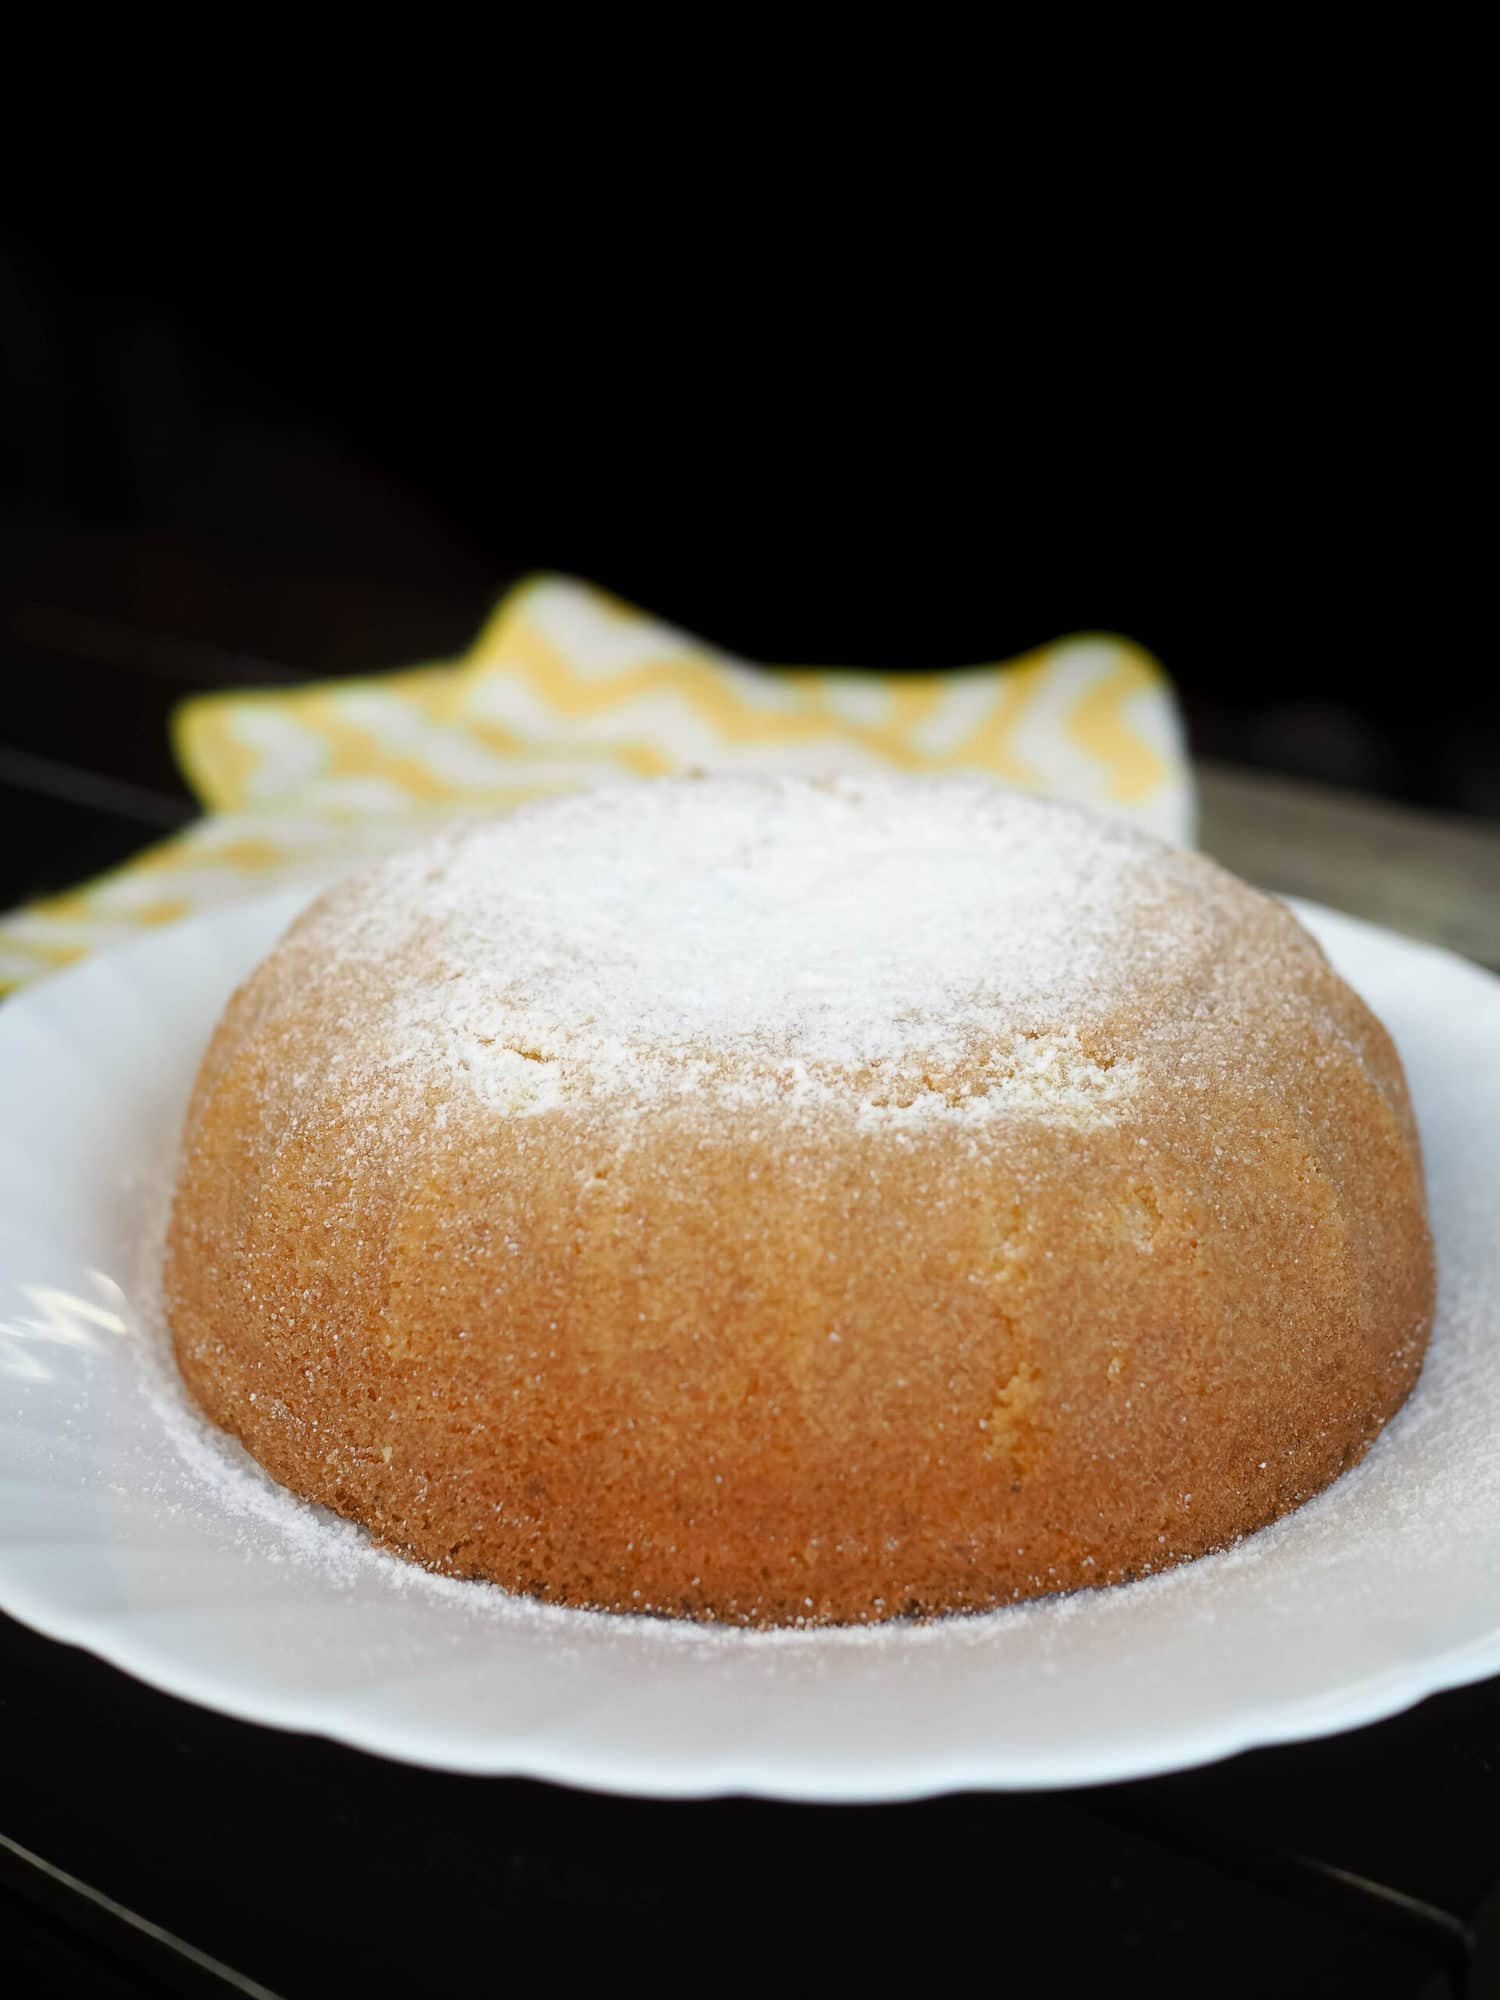 A bowl shaped cake with powdered sugar topping